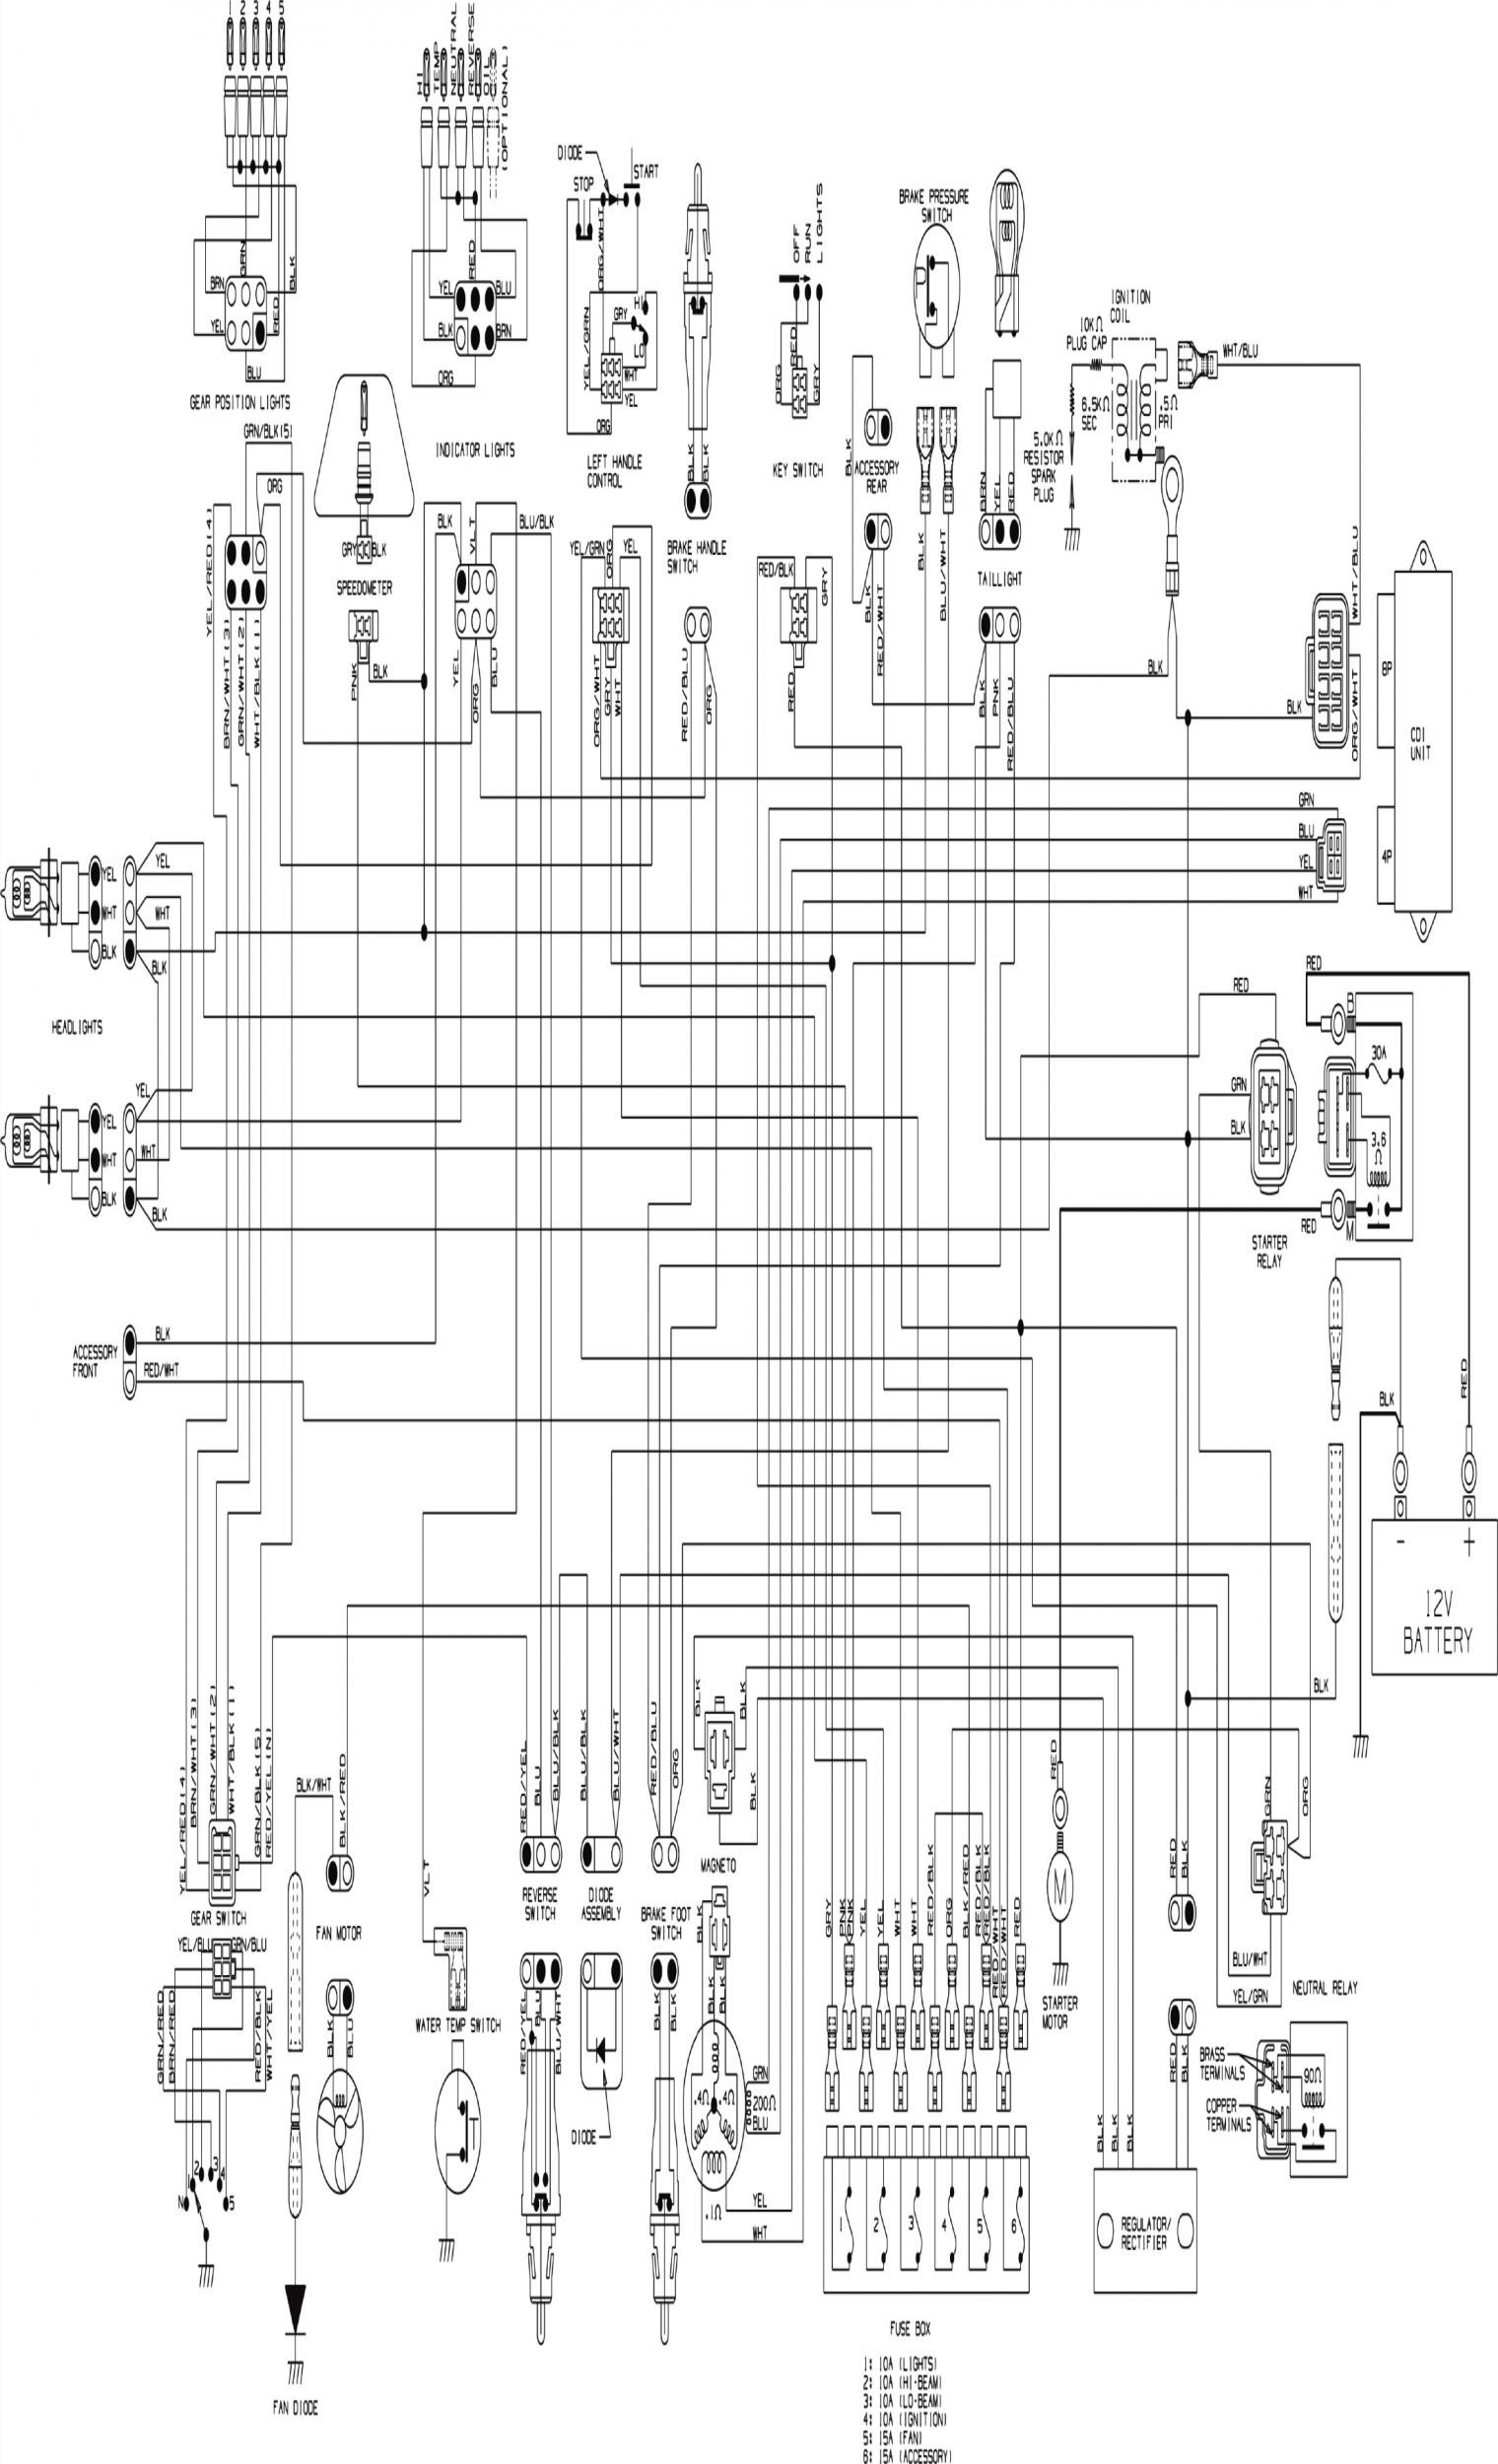 caterpillar c12 wiring diagram best collection electrical wiring